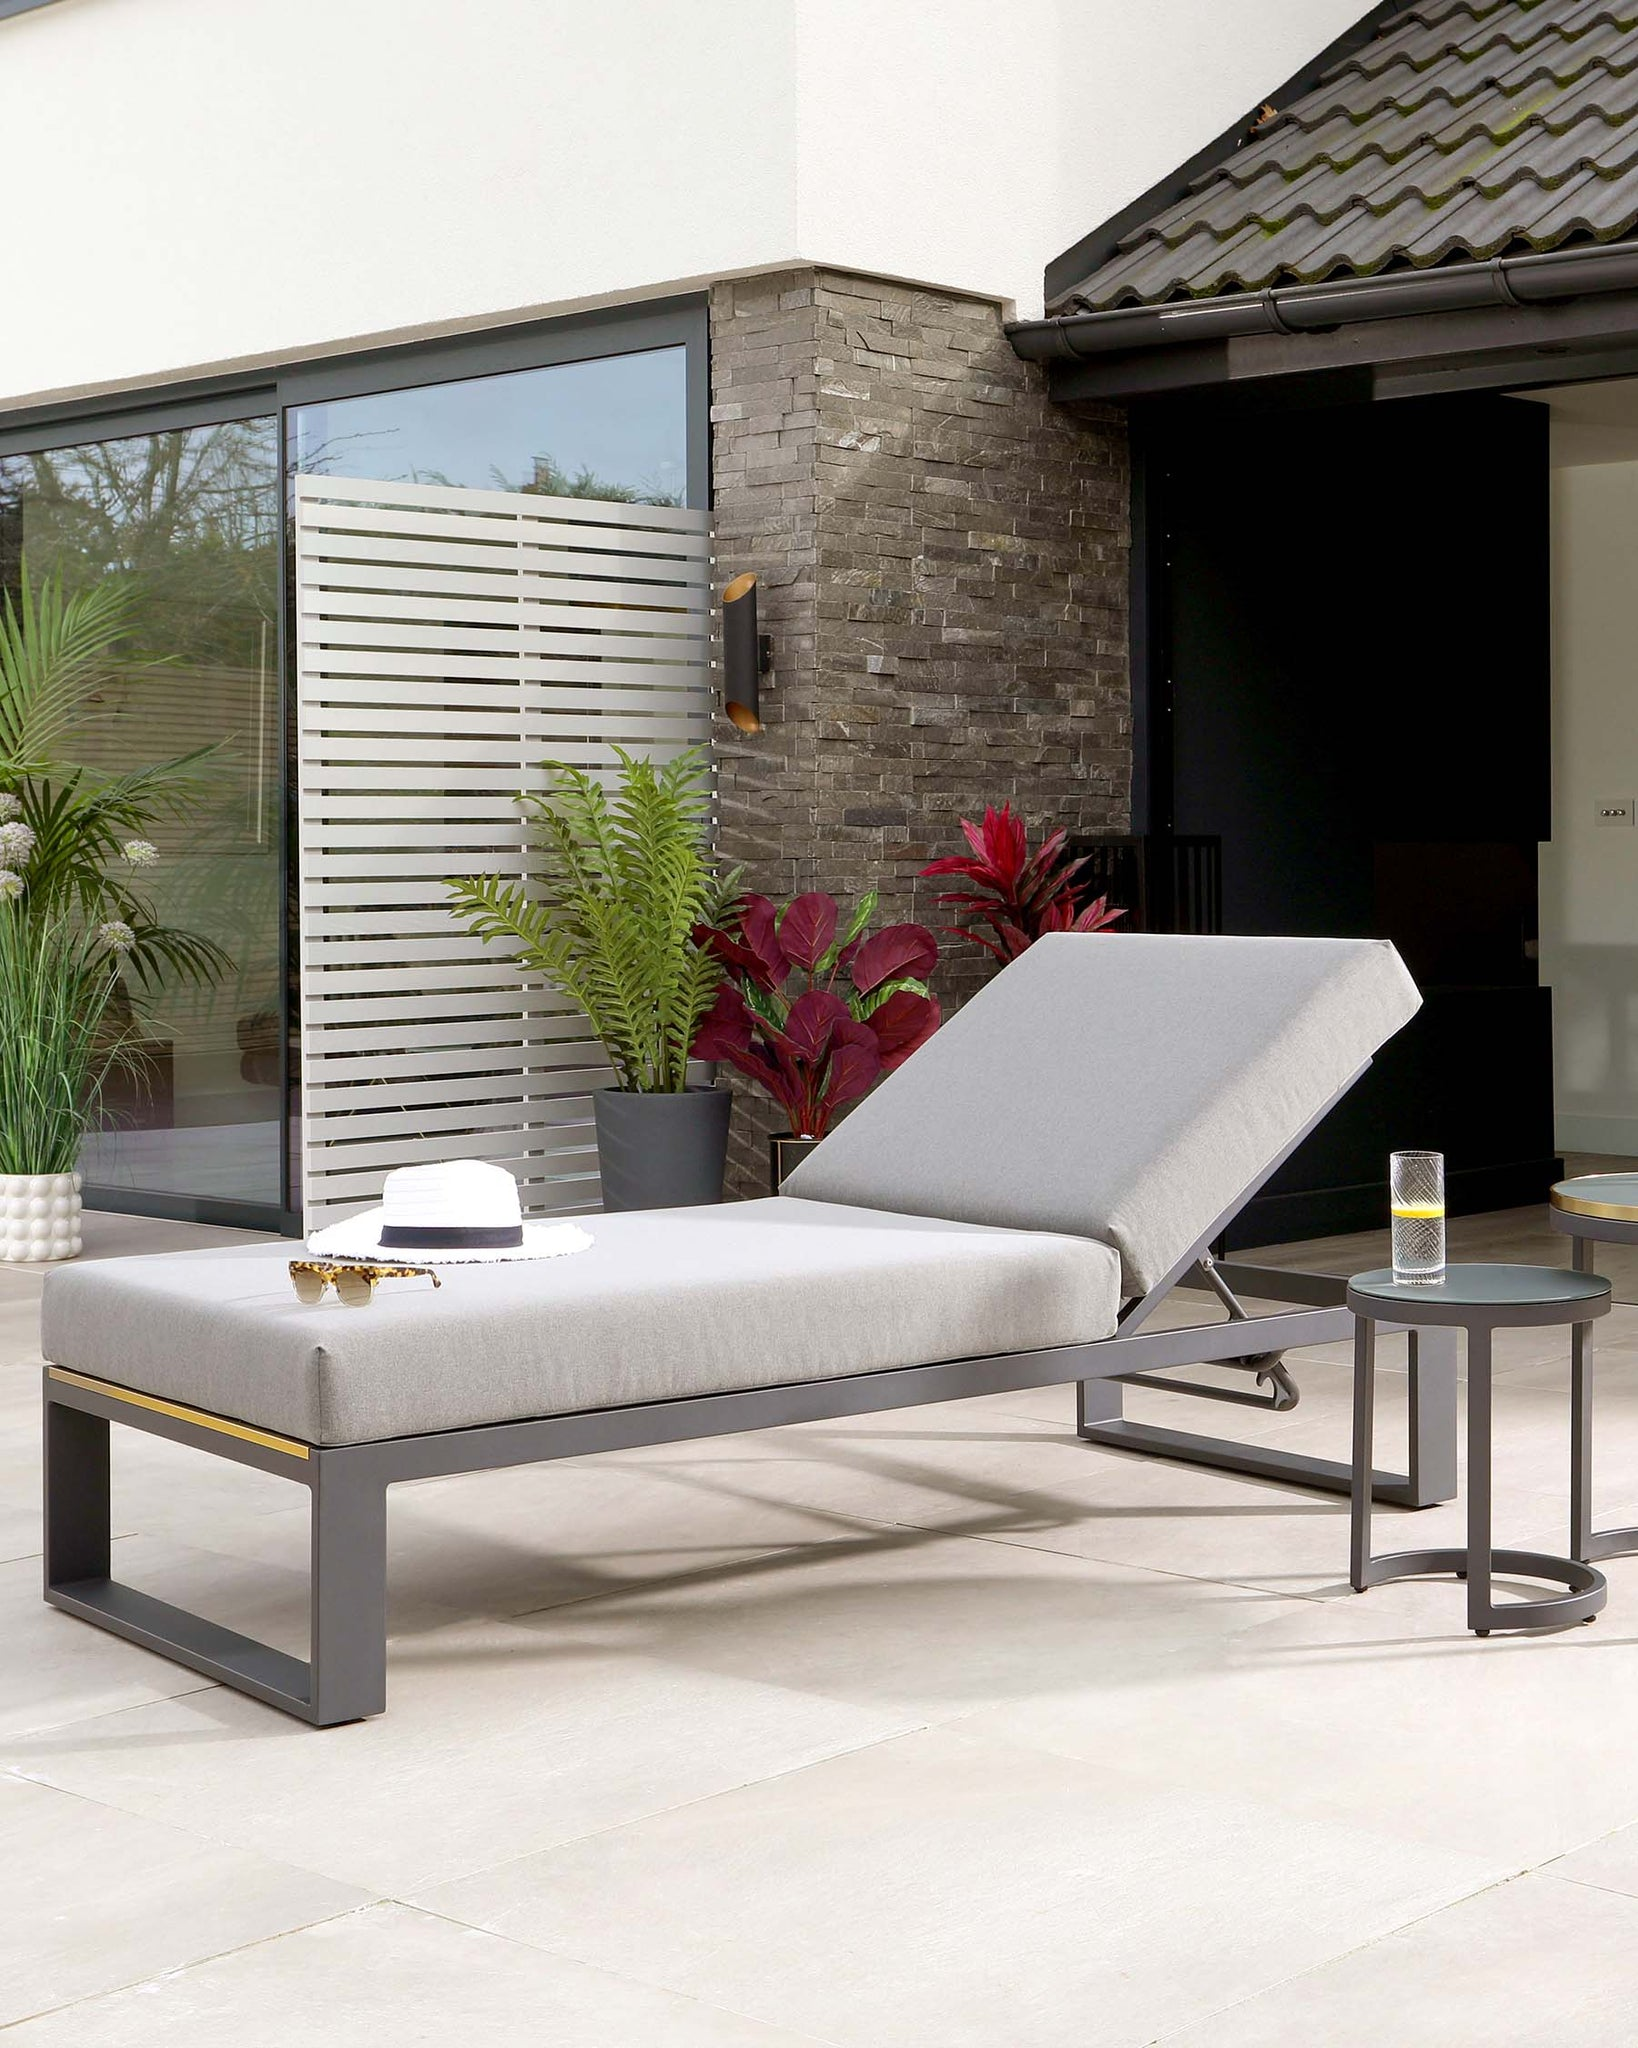 Savannah Grey Garden Sun Lounger